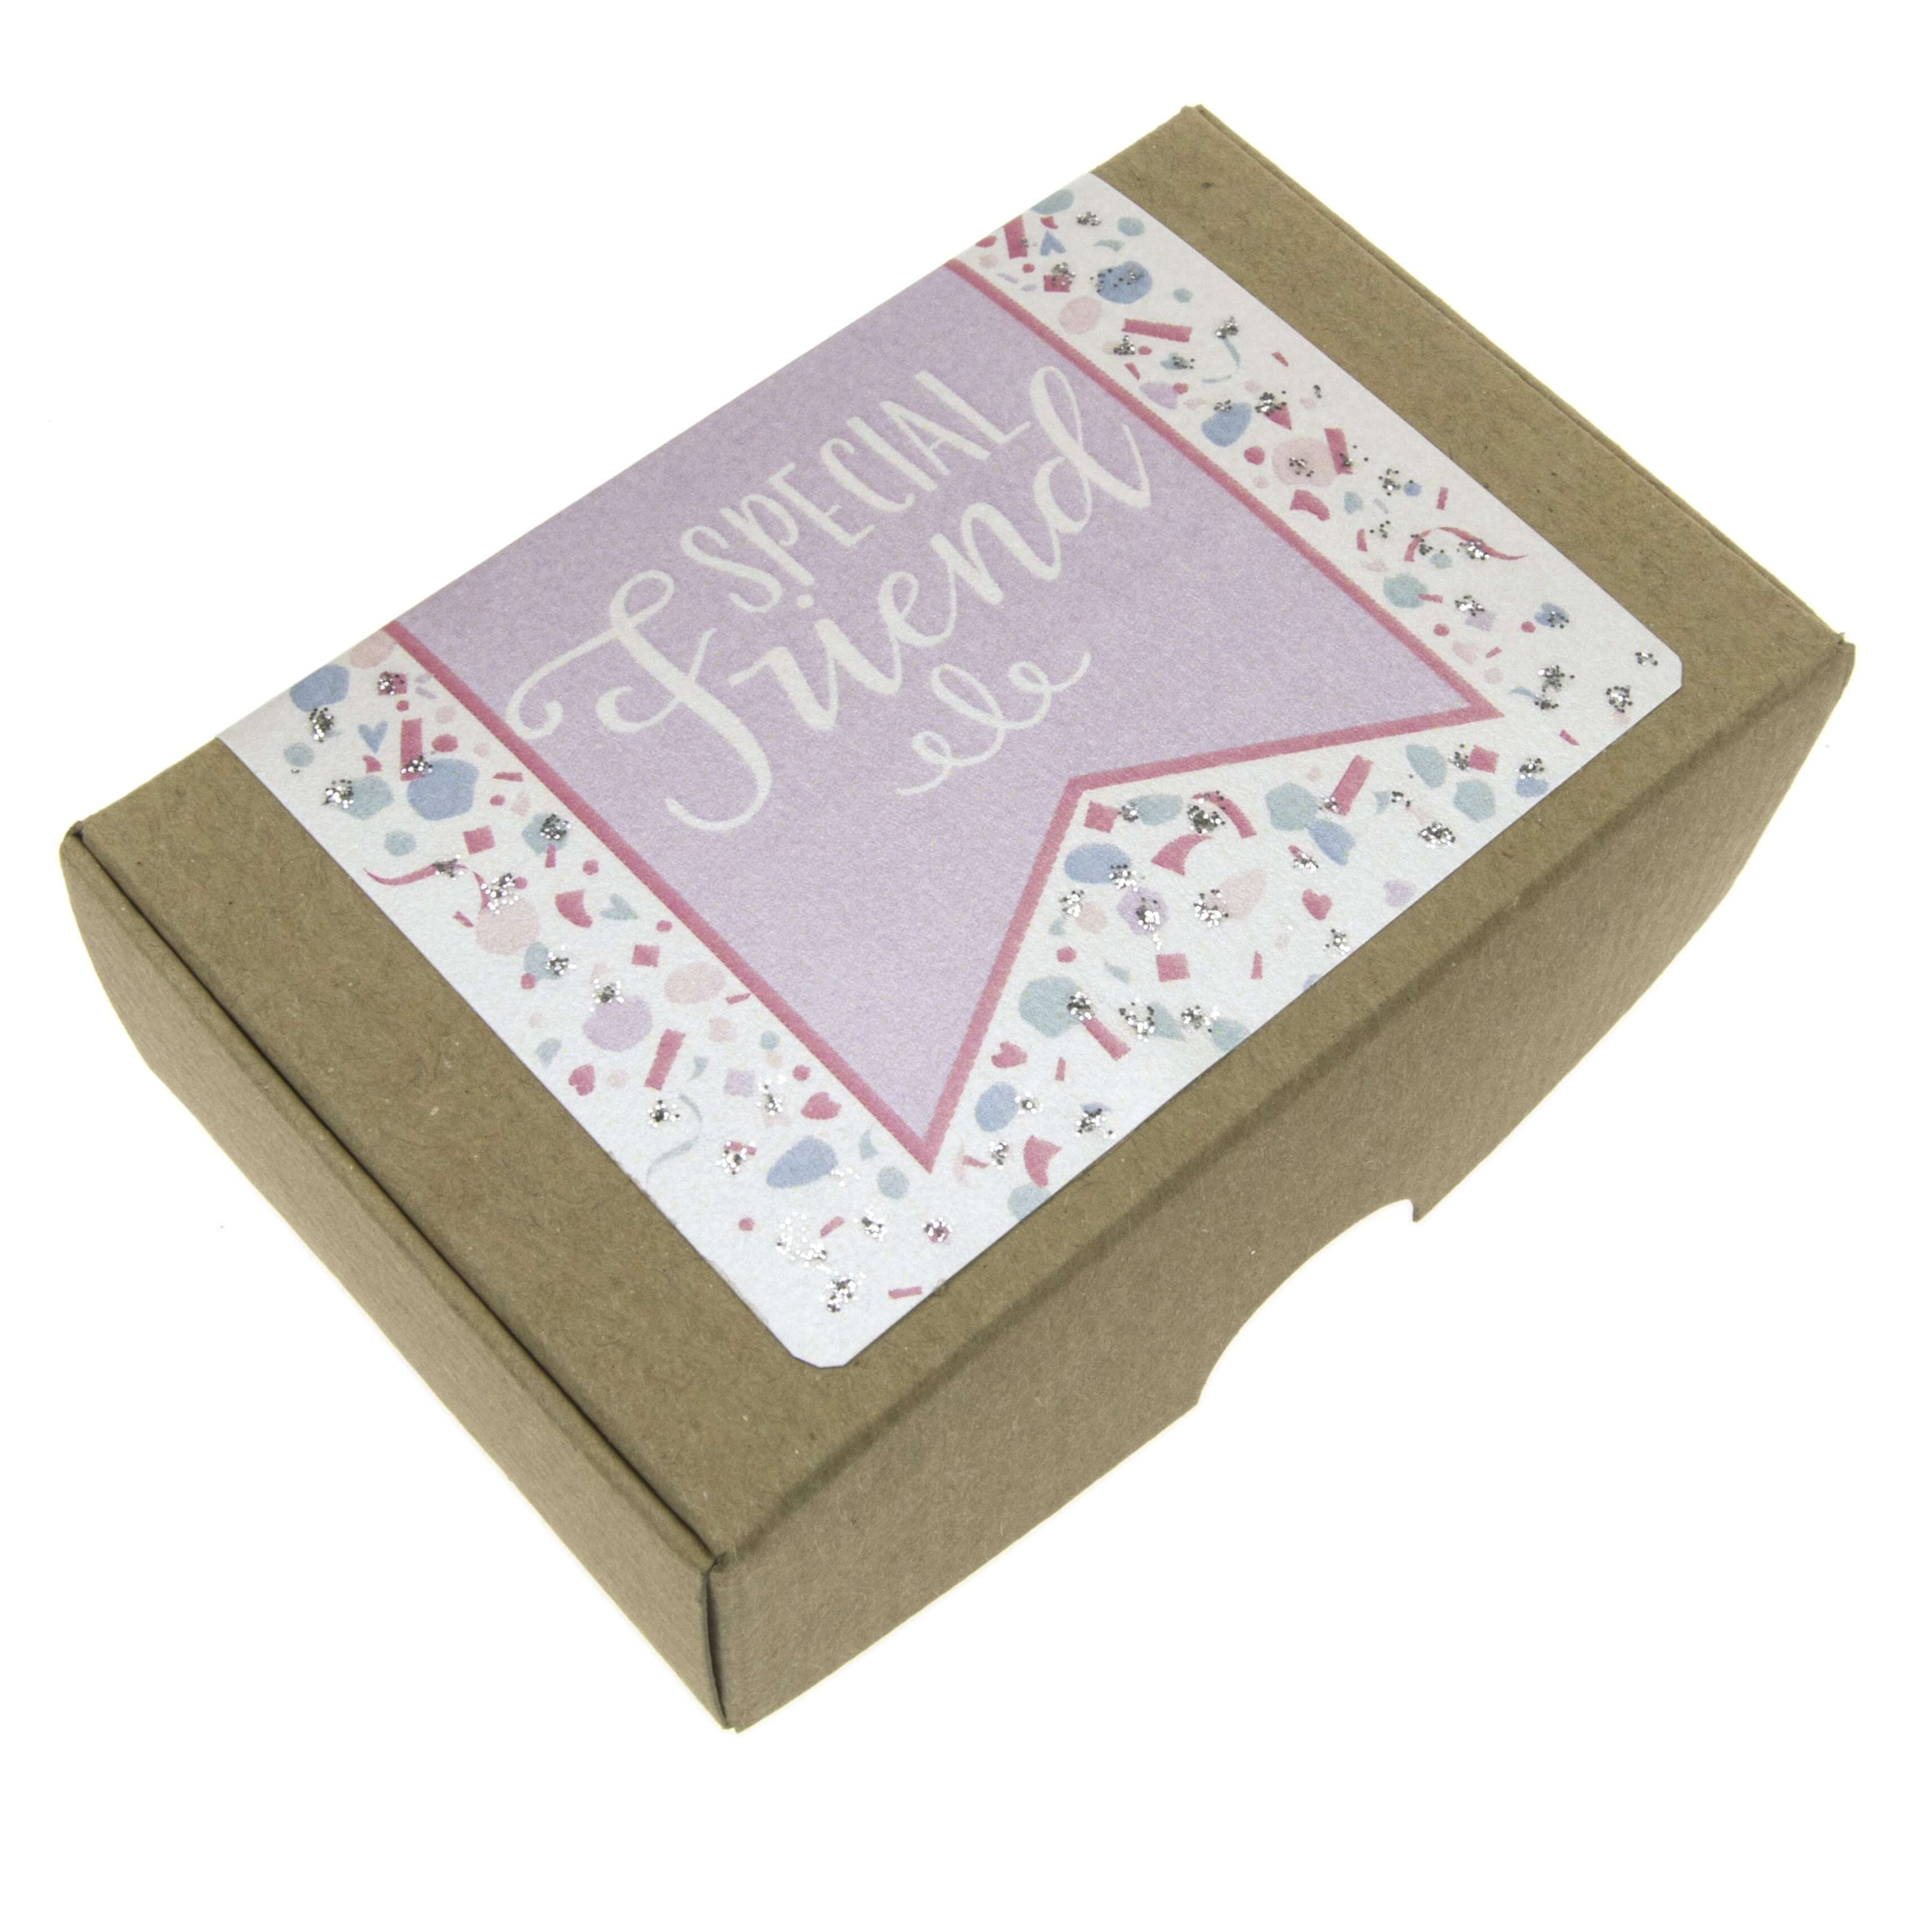 Special Friend Gift Soap